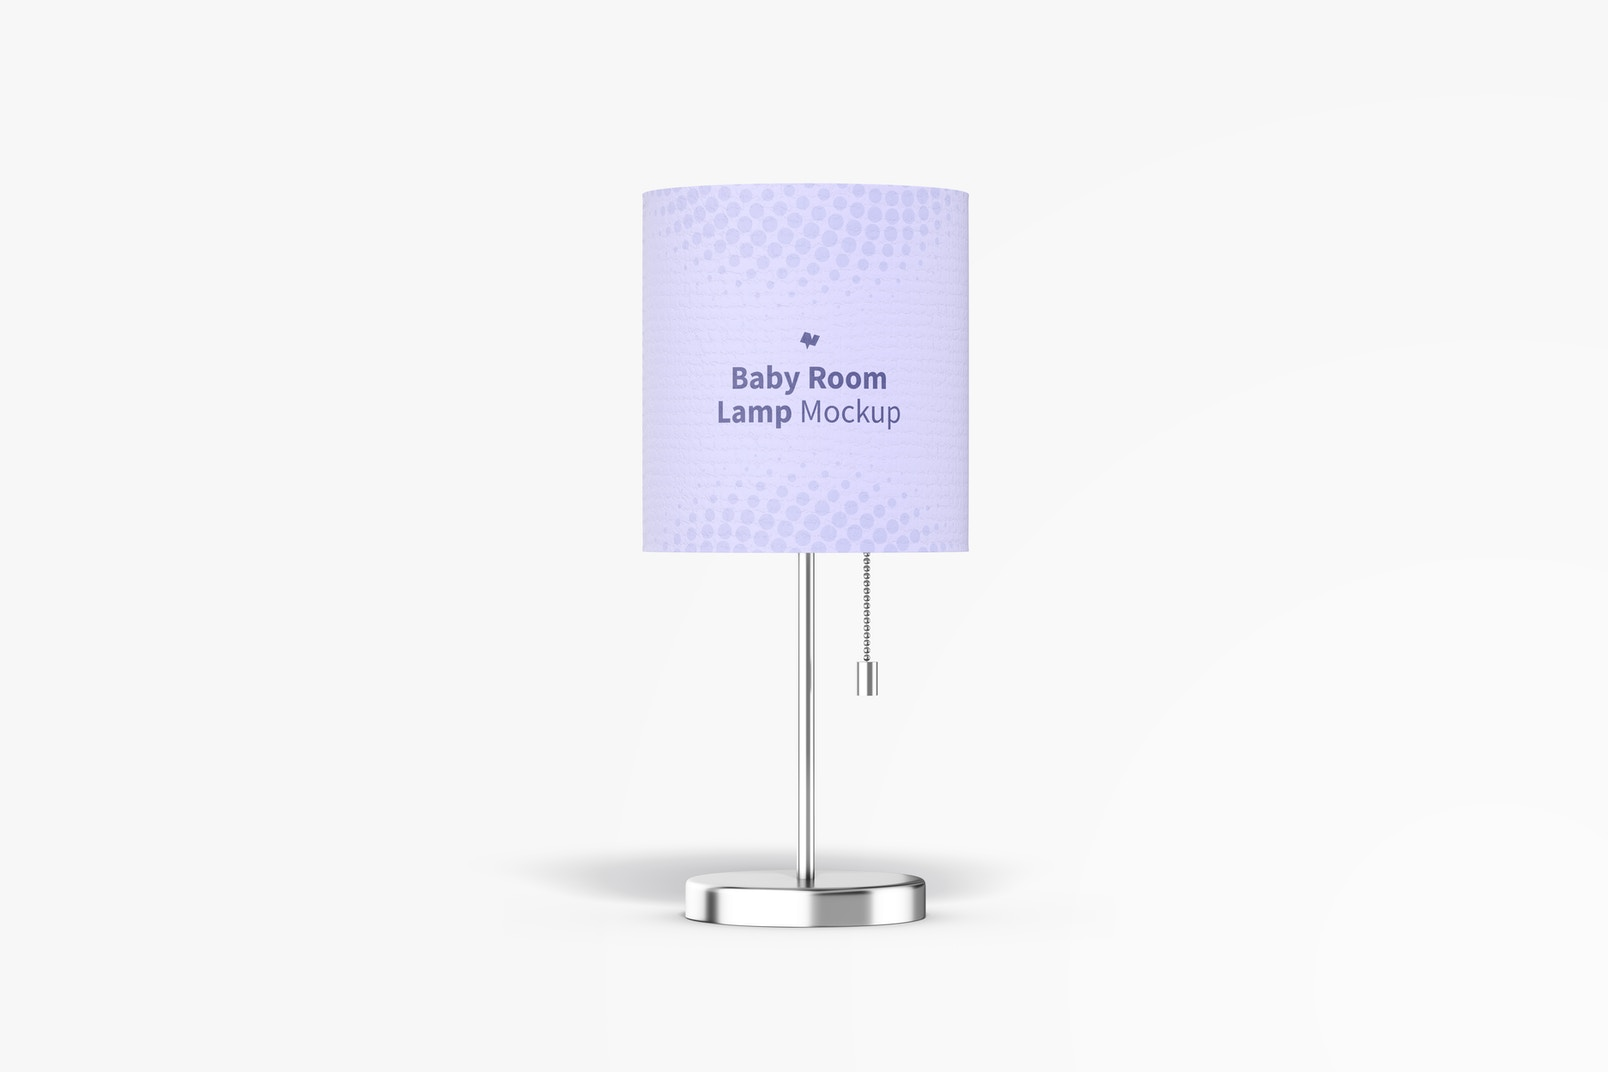 Baby Room Lamp Mockup, Front View